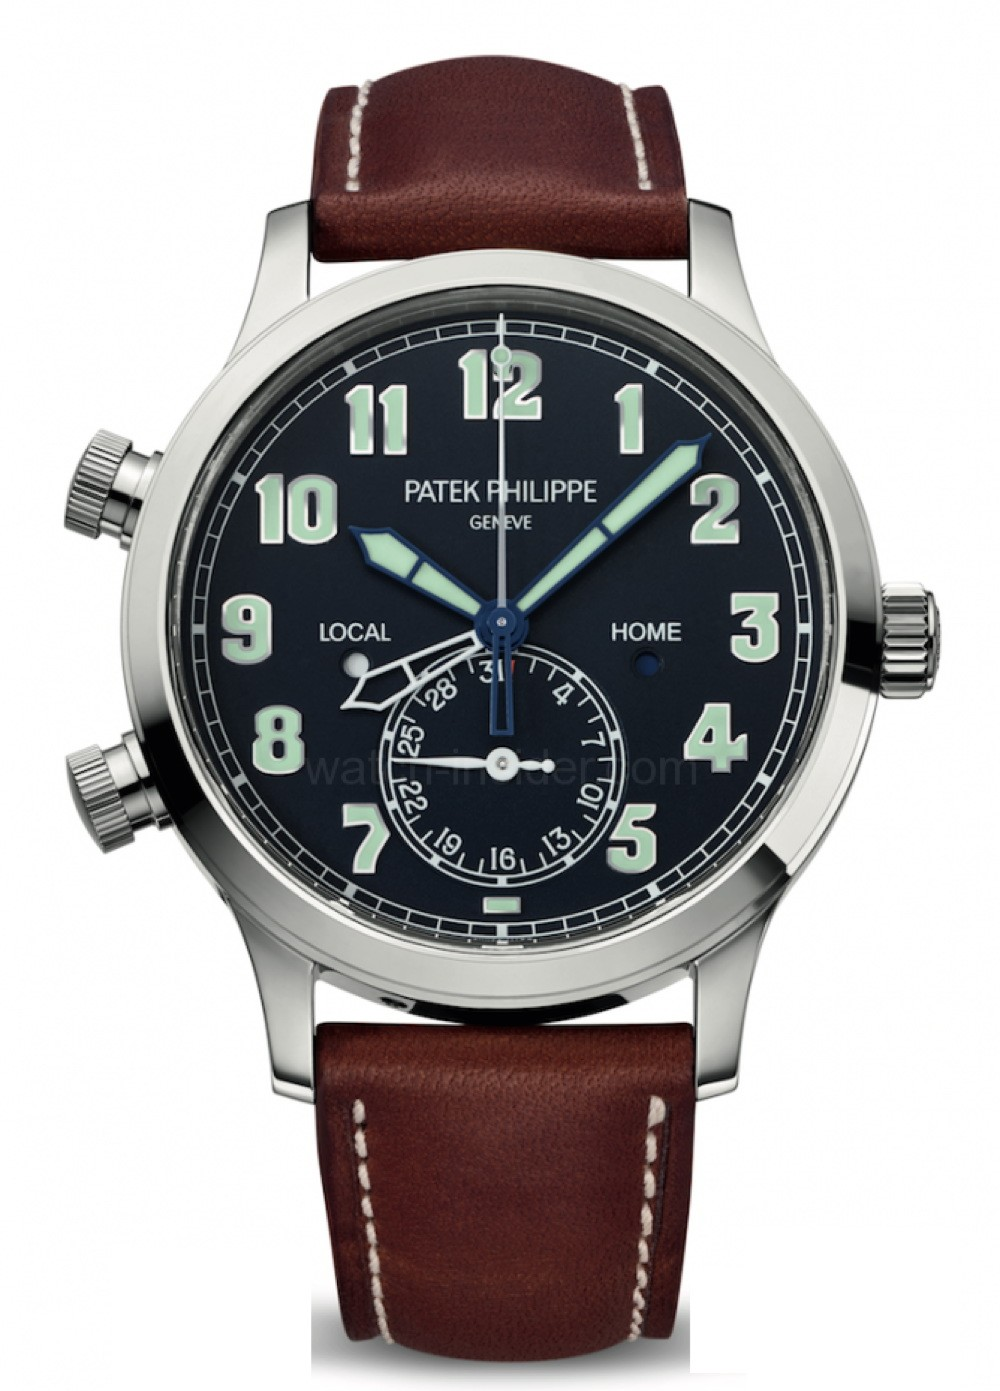 RPR_Patek-Philippe-Calatrava-Pilot-Travel-Time-Ref-5524-watch